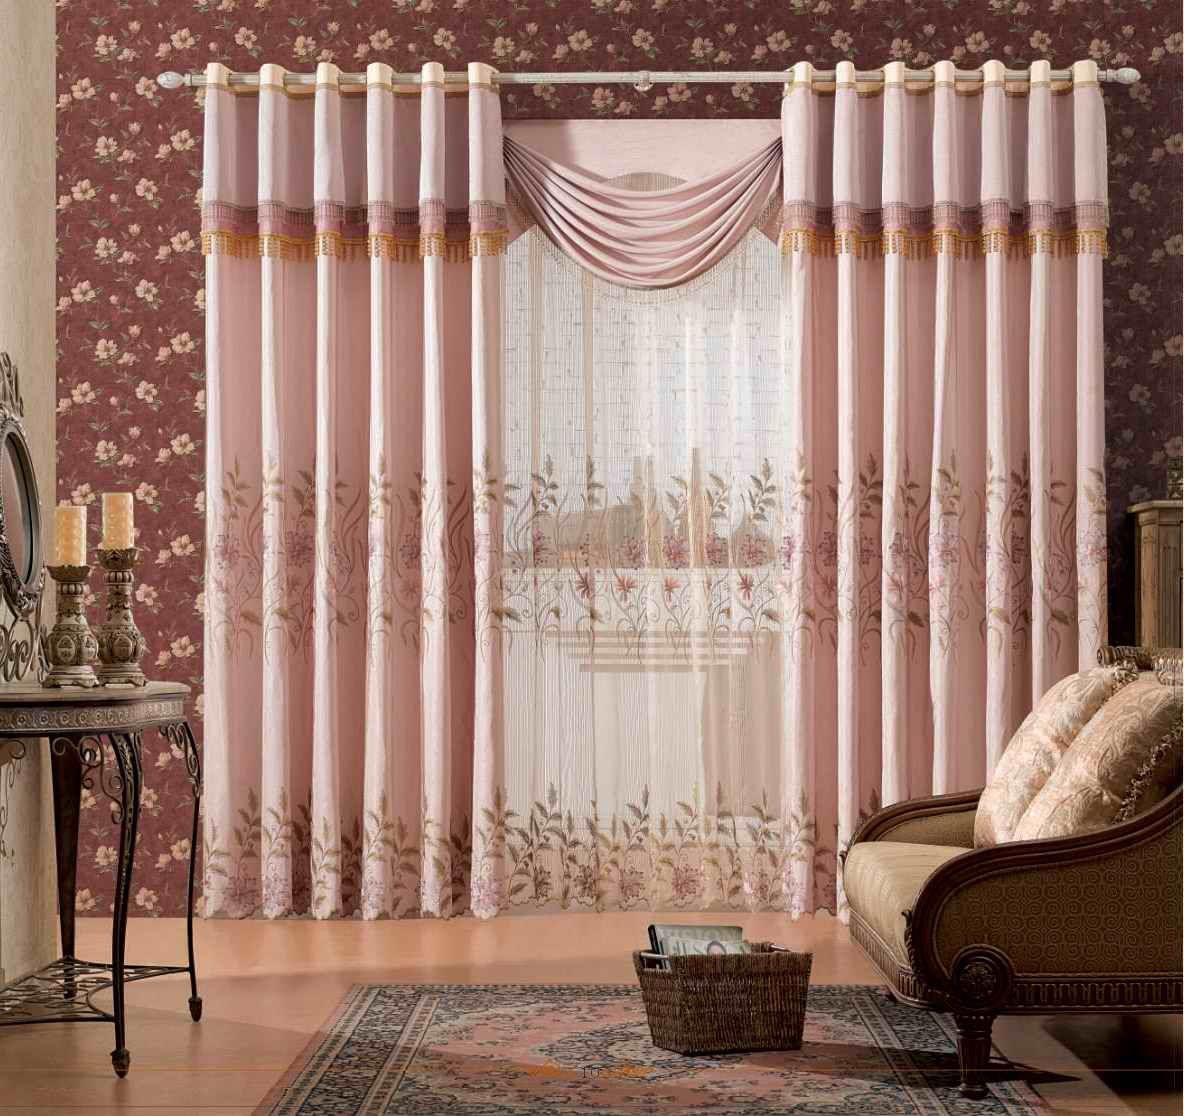 Living Room Curtains Designs Alluring Top 22 Curtain Designs For Living Room  European Style Beautiful Design Decoration